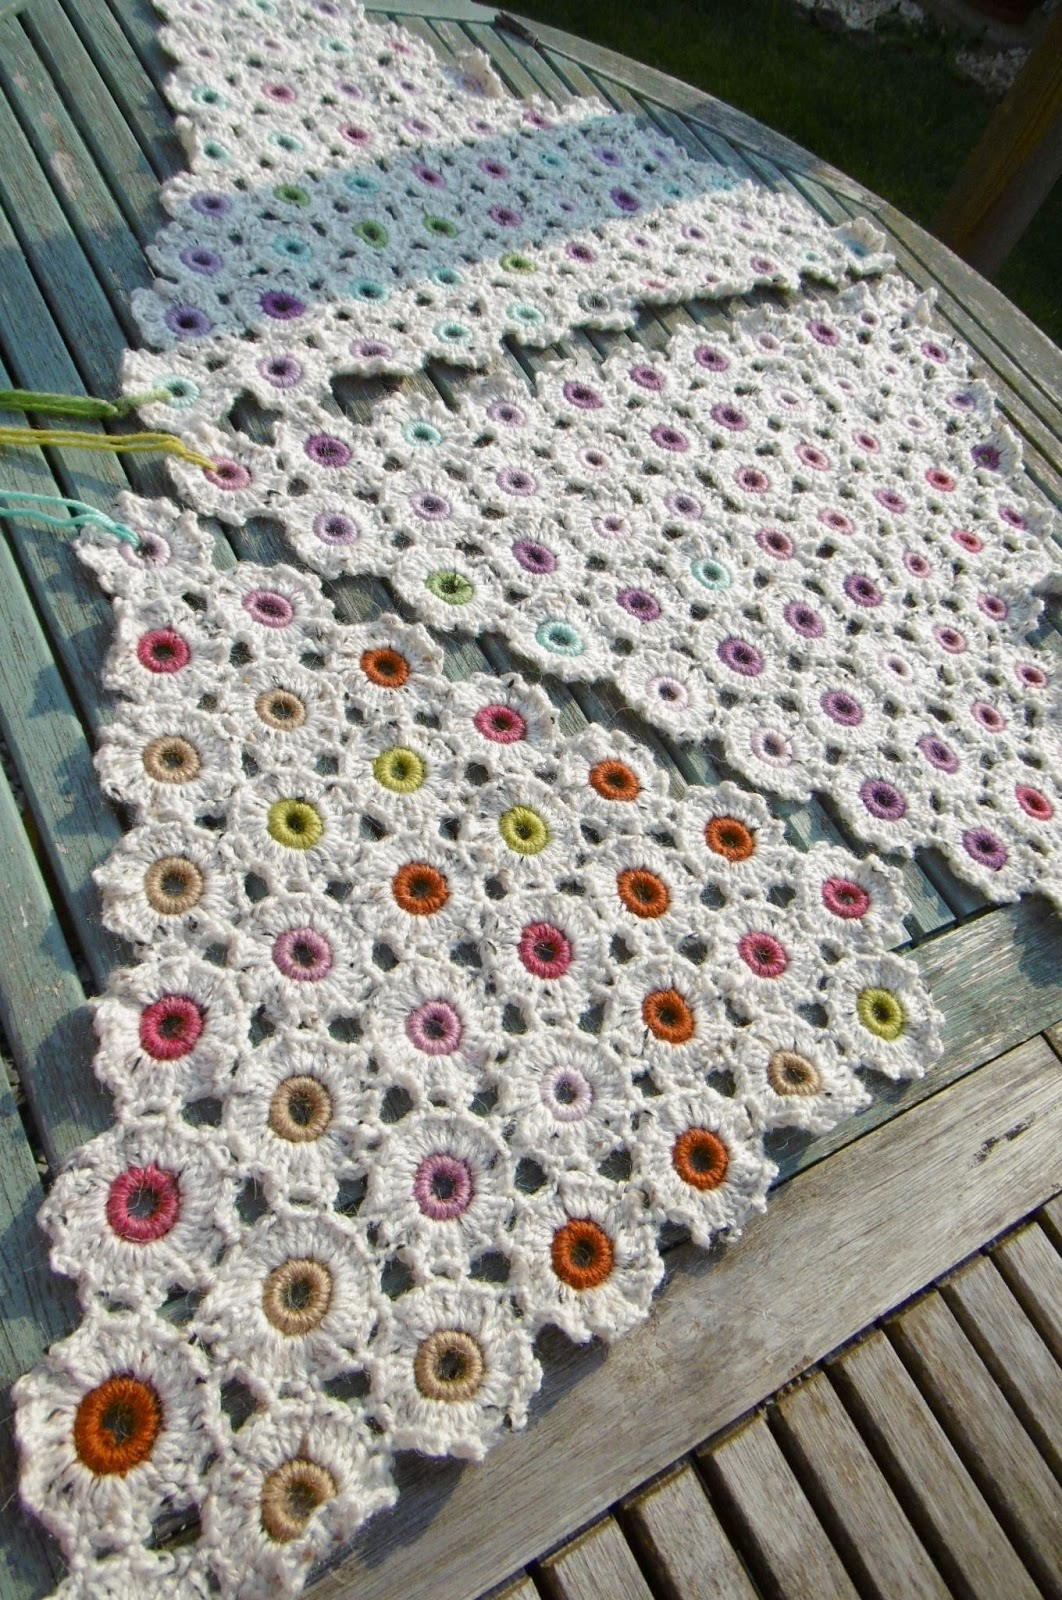 Crochet Temperature Blanket : TEMPERATURE BLANKET....NEED 2 NEW COLOURS! Suz Crochet Groove ...